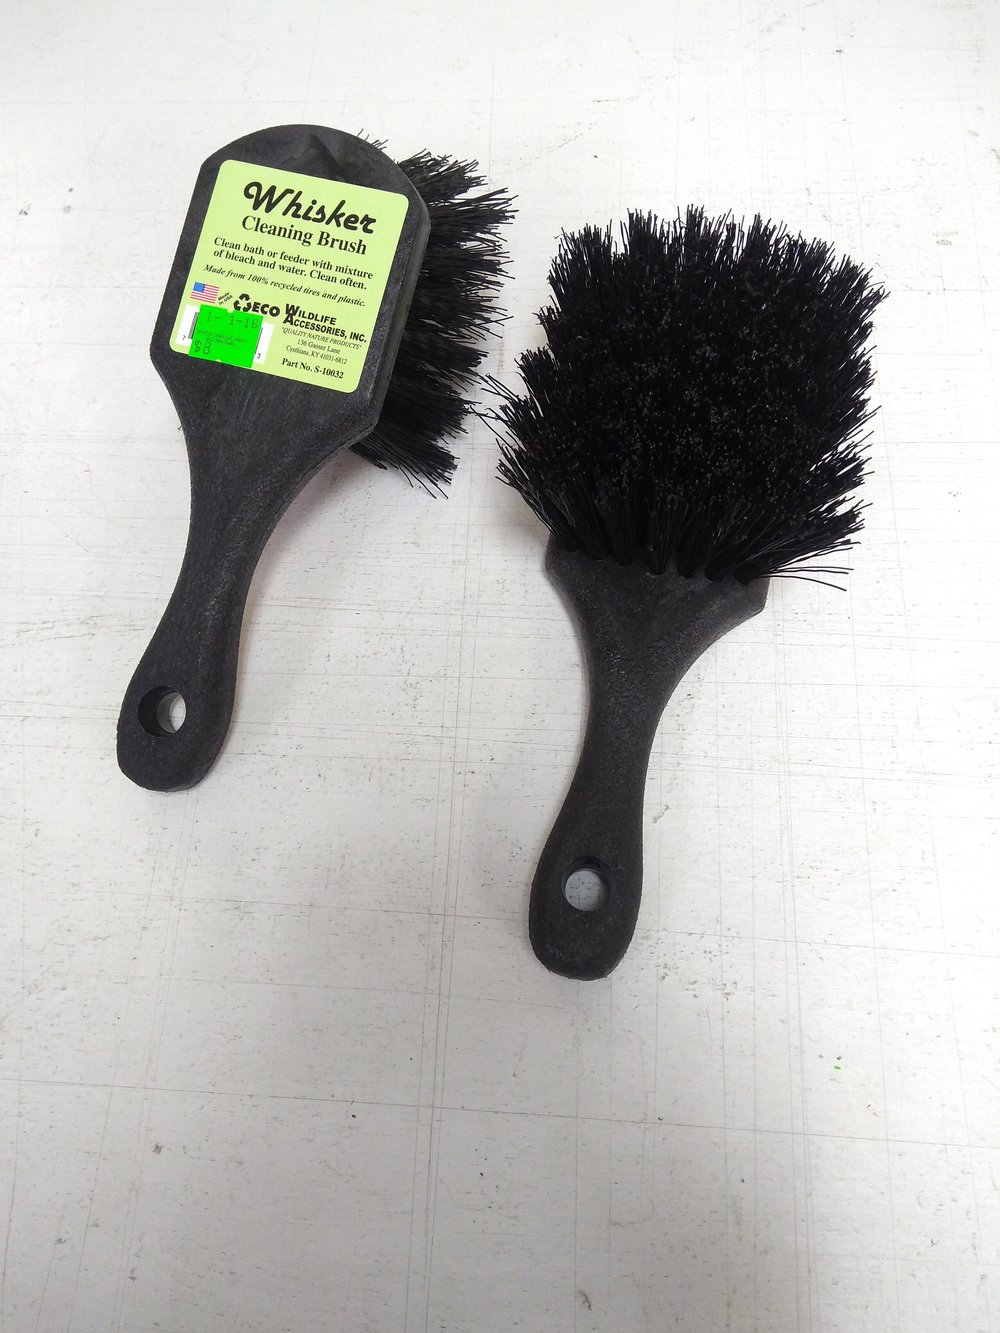 These large brushes work great for birdbaths and cleaning out large feeder trays.